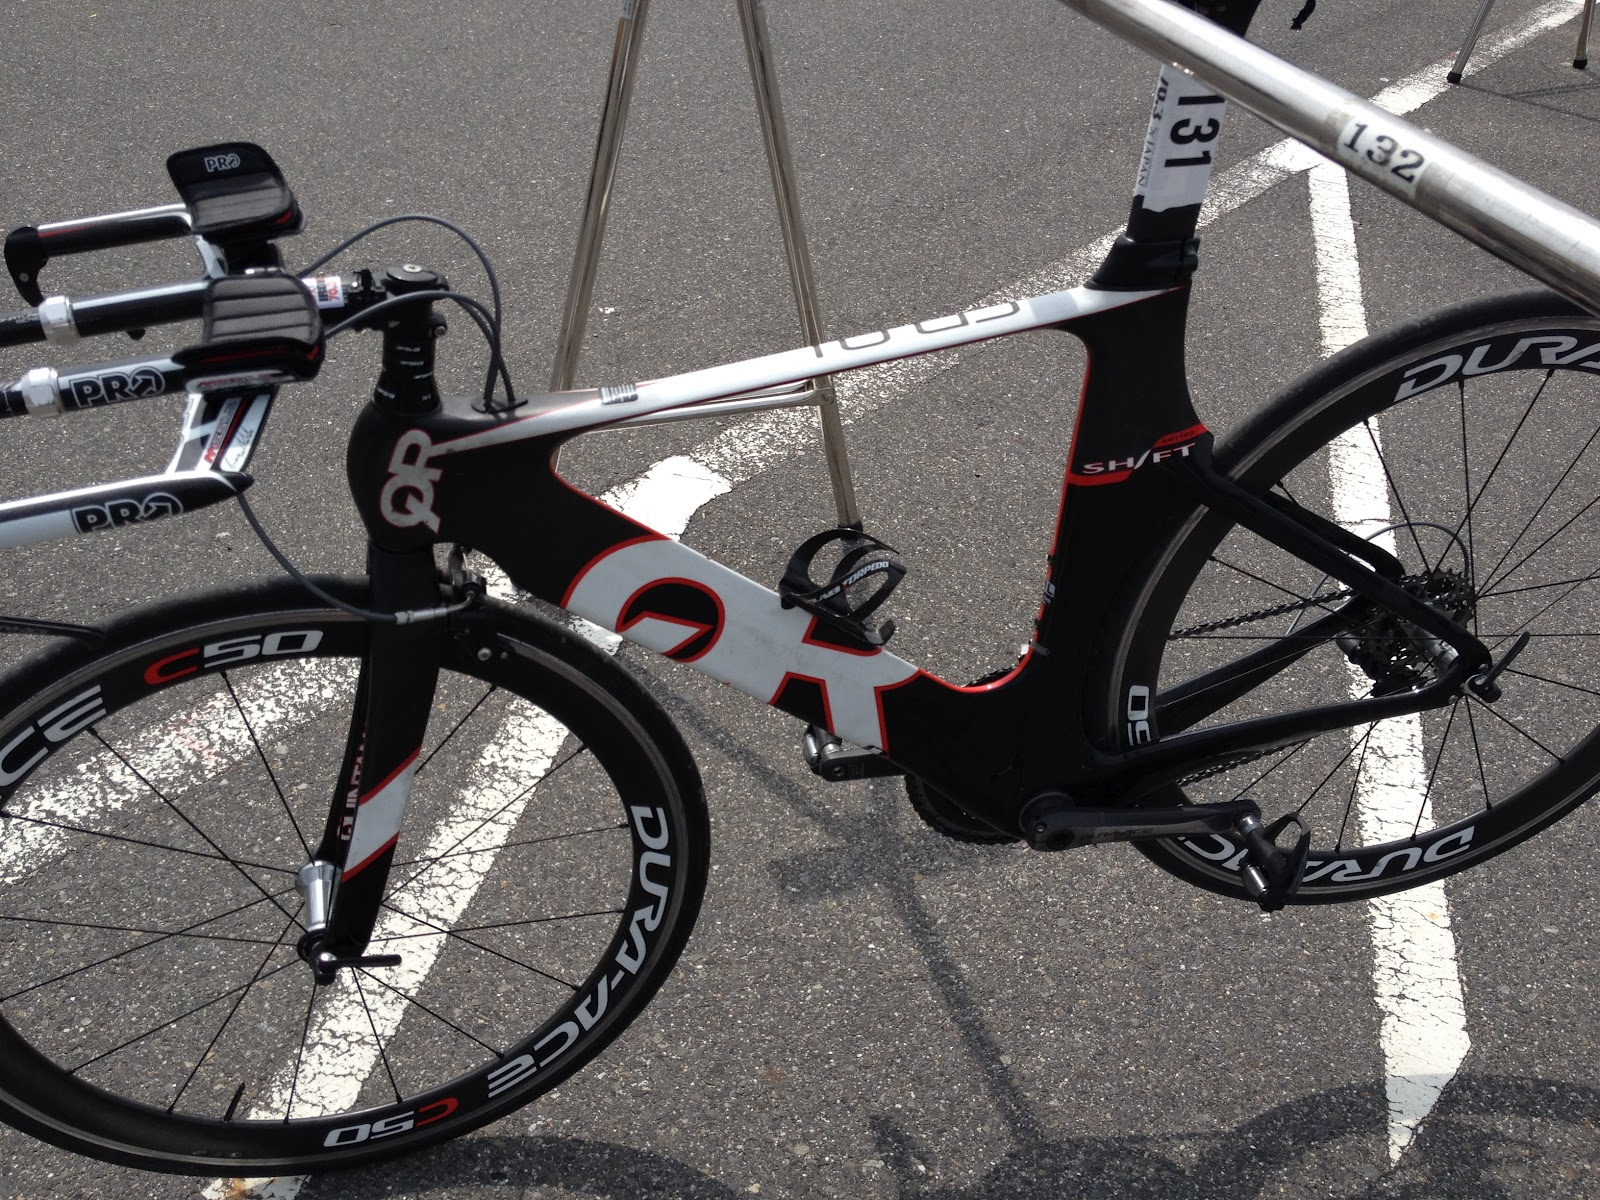 How To Prepare Your Triathlon Bike For Racing Timex Group Usa Inc